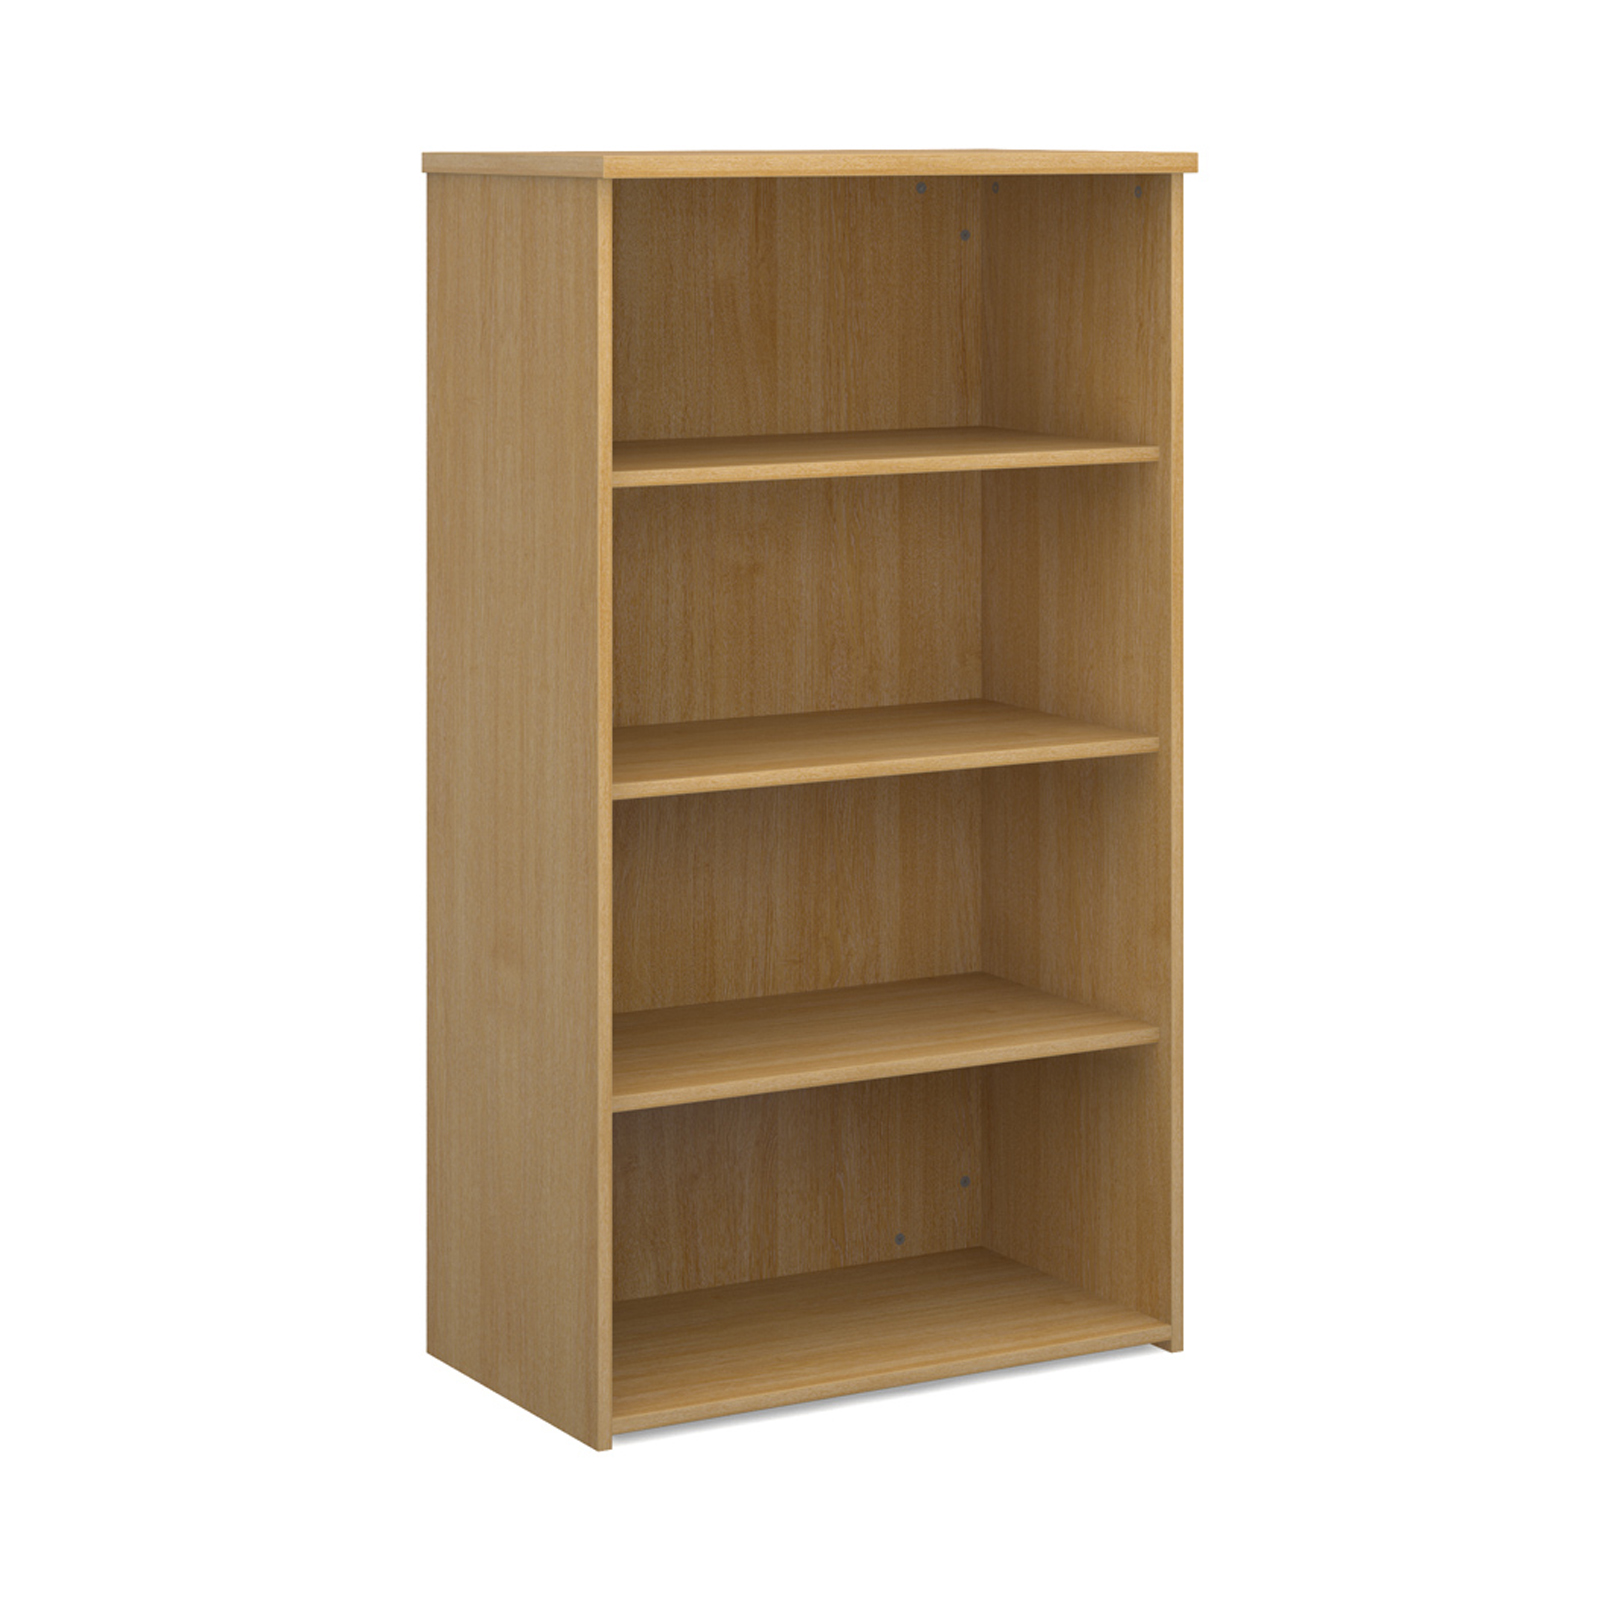 Over 1200mm High Universal bookcase 1440mm high with 3 shelves - oak